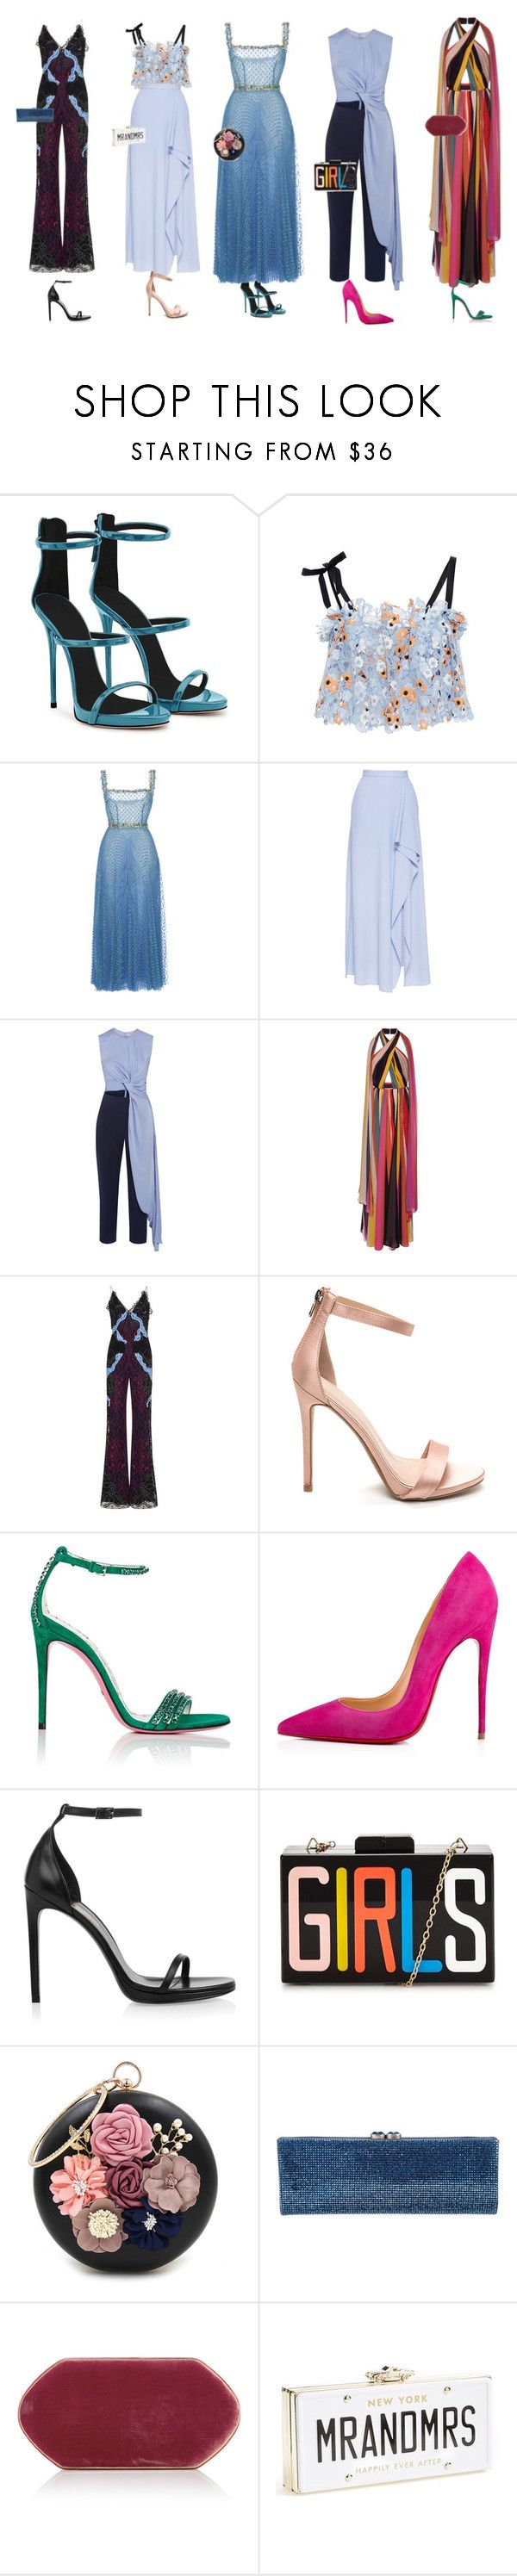 """wedding"" by anaunderground on Polyvore featuring moda, Giuseppe Zanotti, Katie Ermilio, LUISA BECCARIA, Roland Mouret, Roksanda, Elie Saab, Jonathan Simkhai, Gucci e Christian Louboutin"